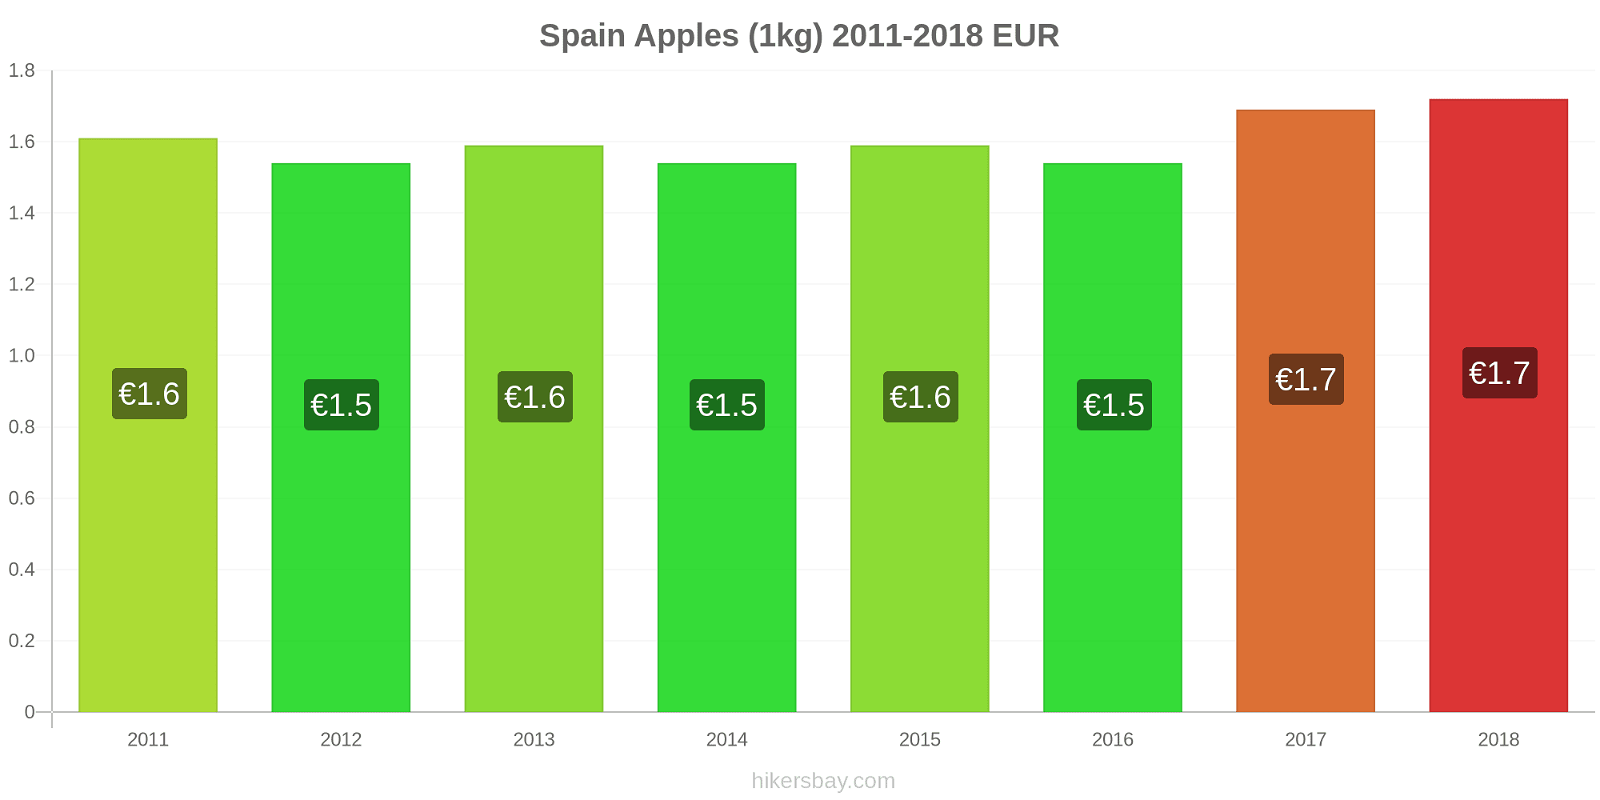 Spain price changes Apples (1kg) hikersbay.com